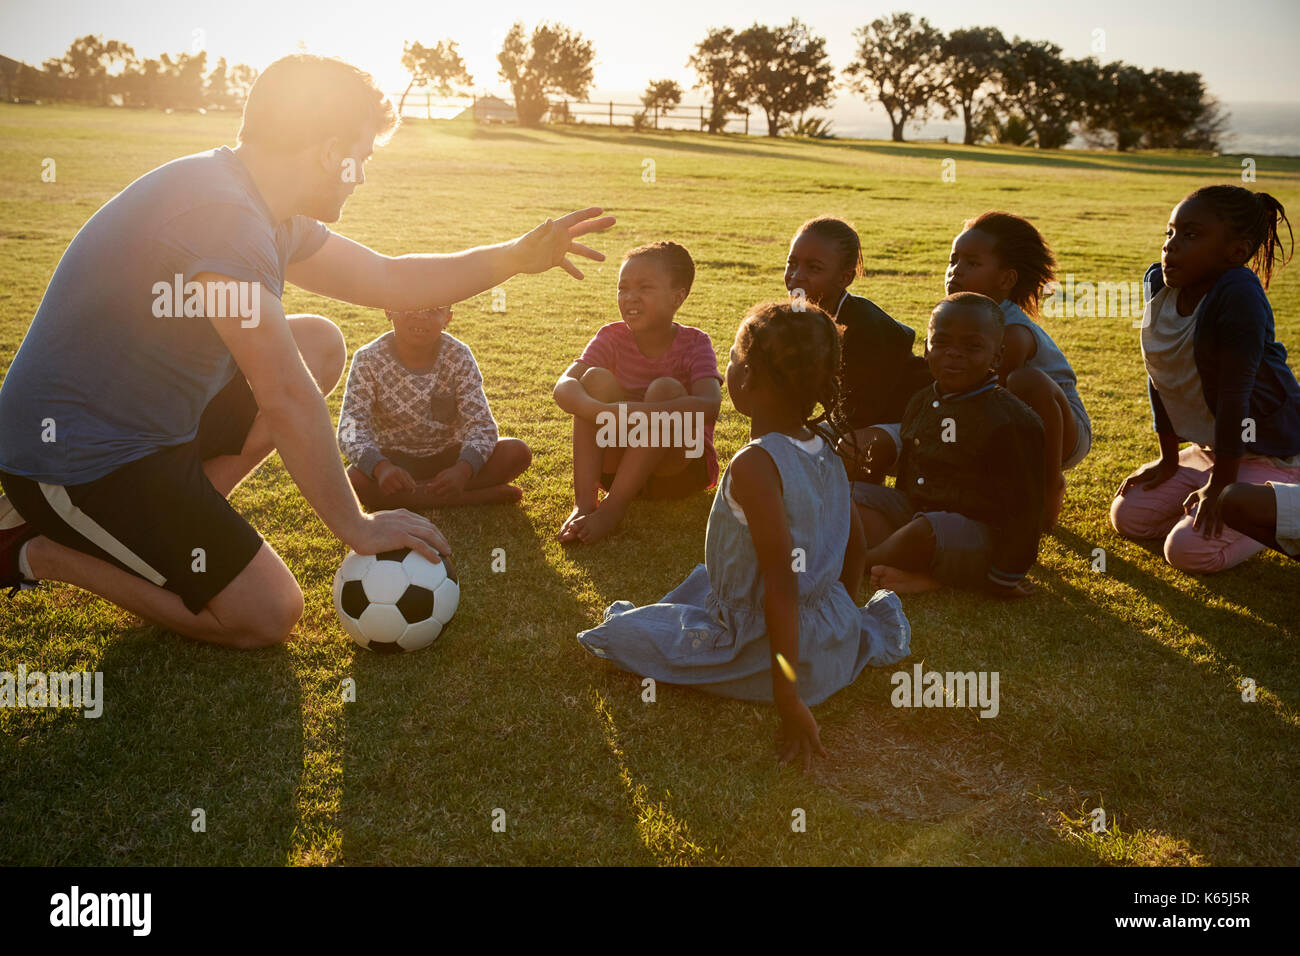 Elementary school kids and teacher sitting with ball in field - Stock Image